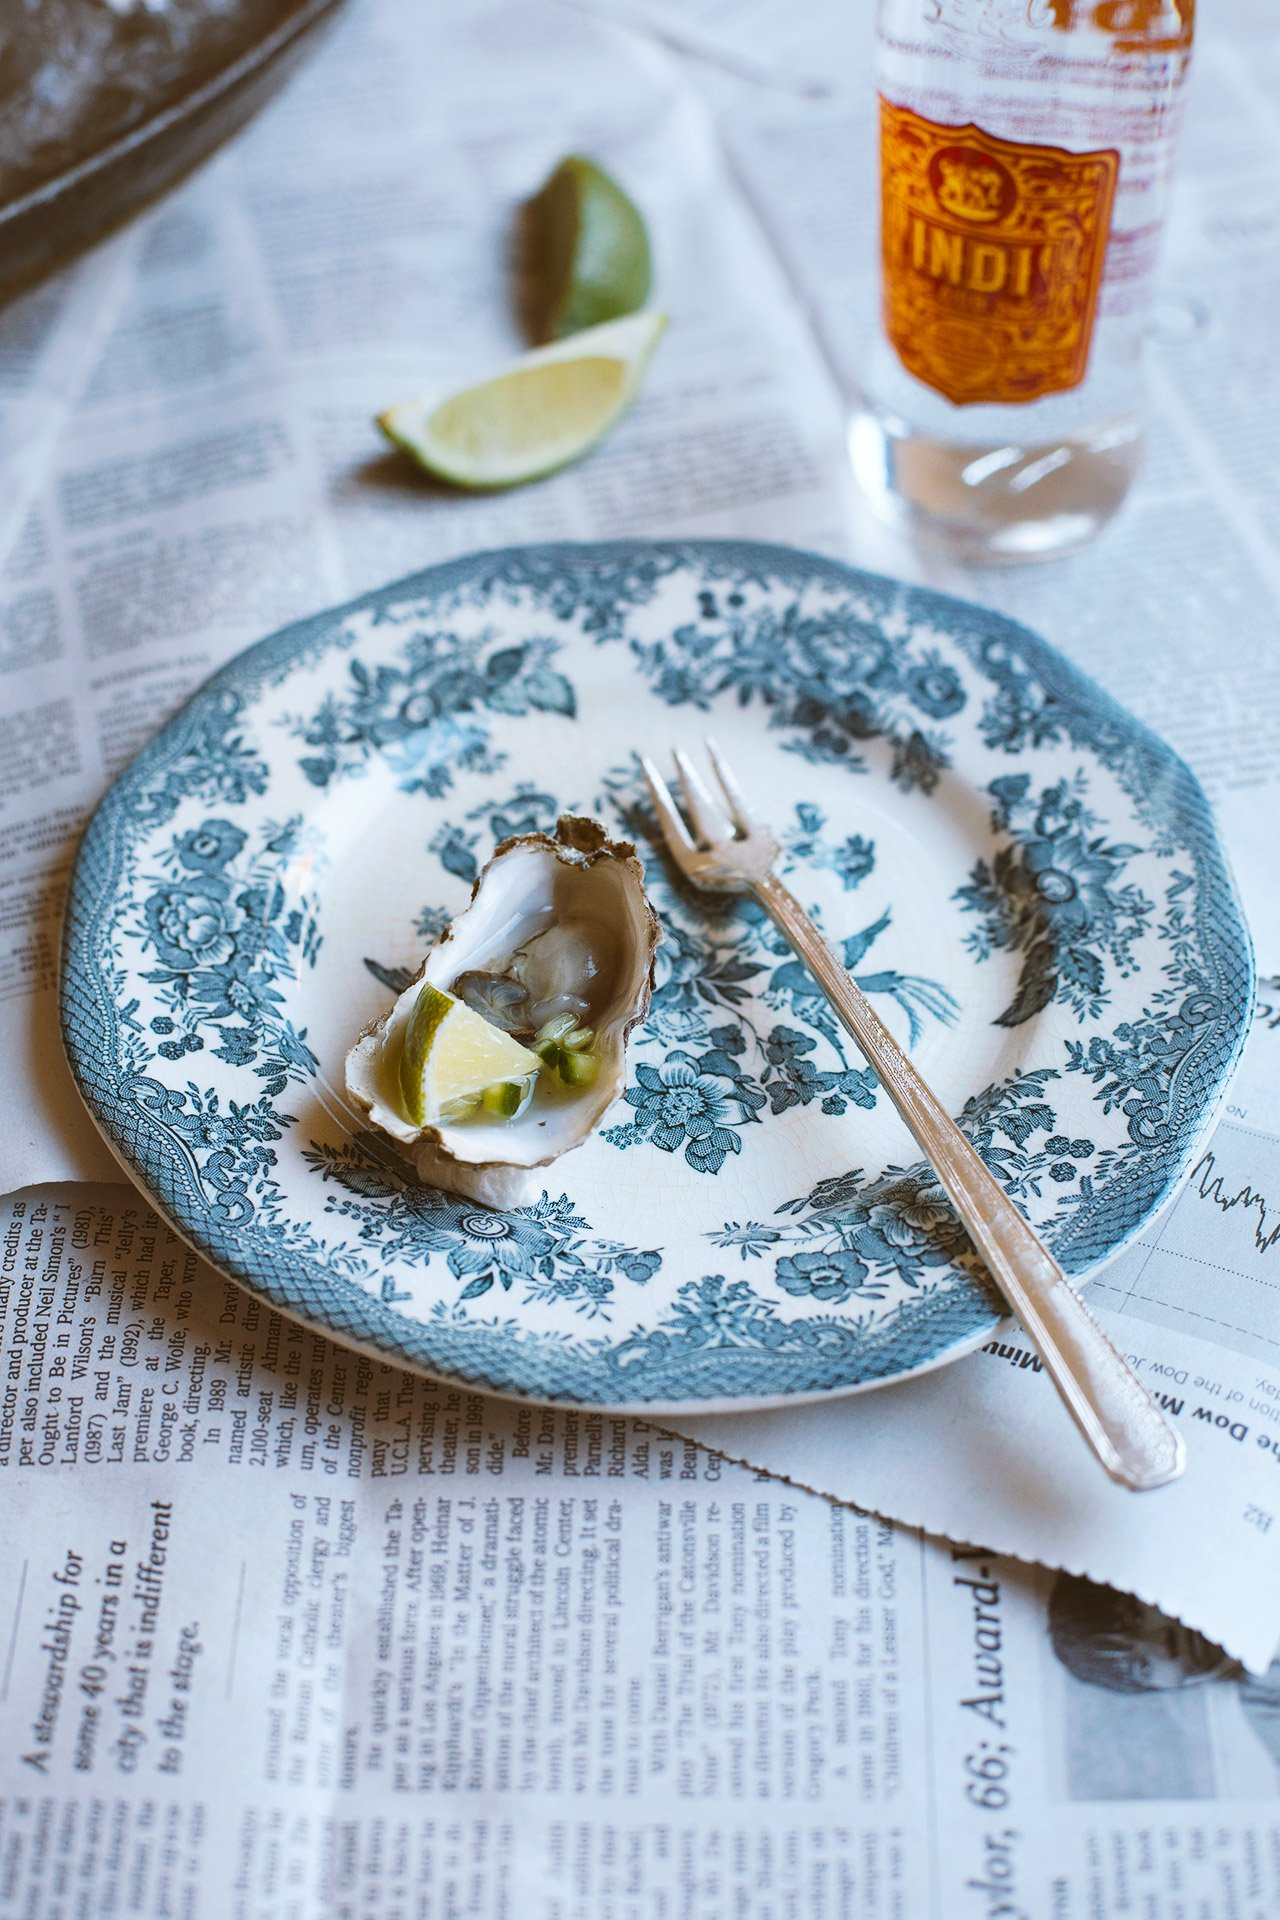 Gin and Tonic Oyster | HonestlyYUM (honestlyyum.com)